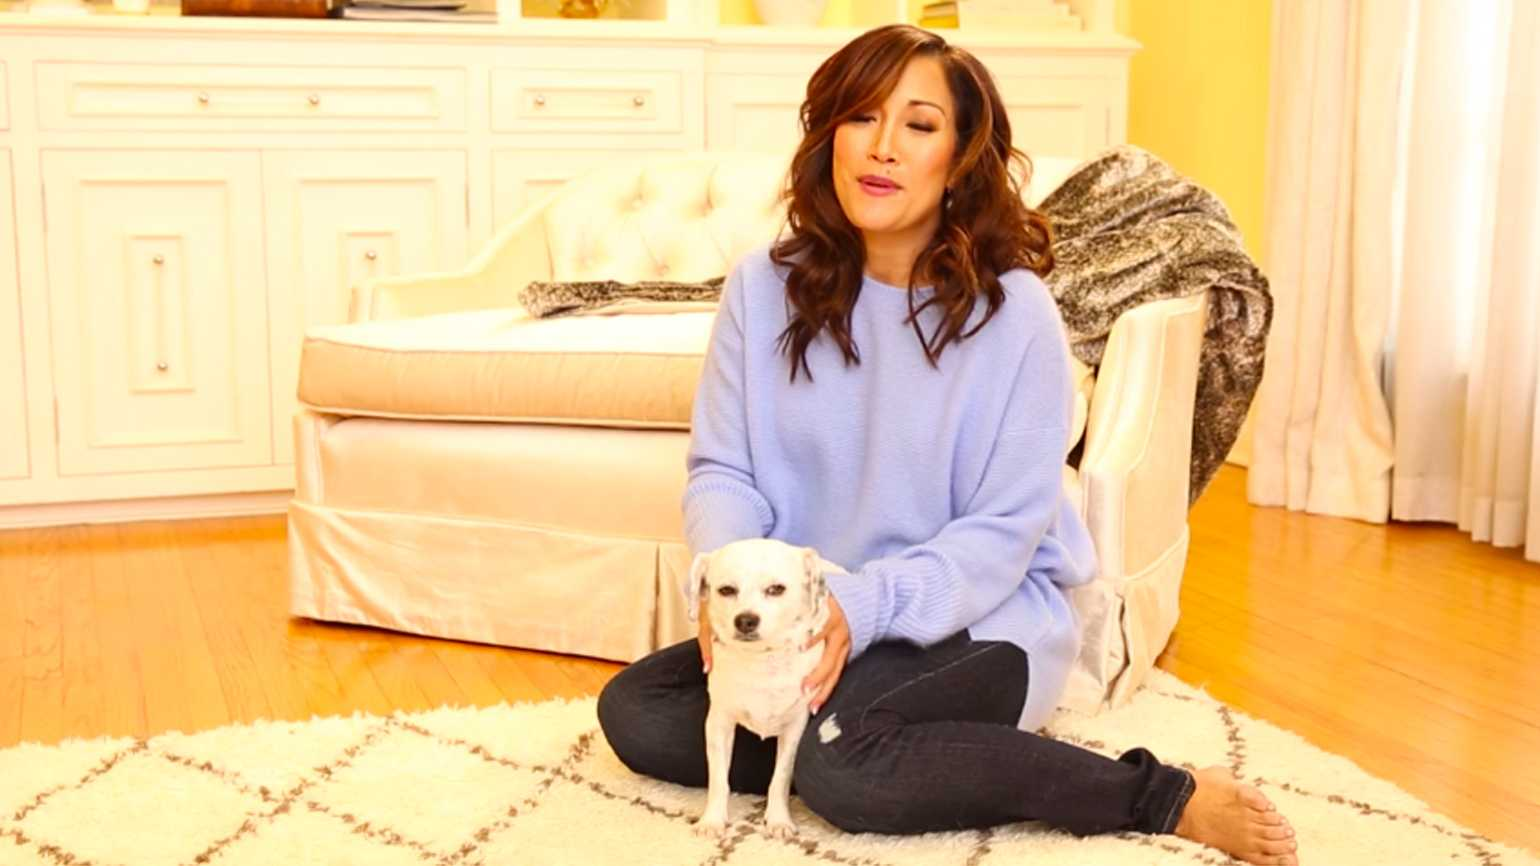 Guideposts Chats with Carrie Ann Inaba on Her Love of Animals